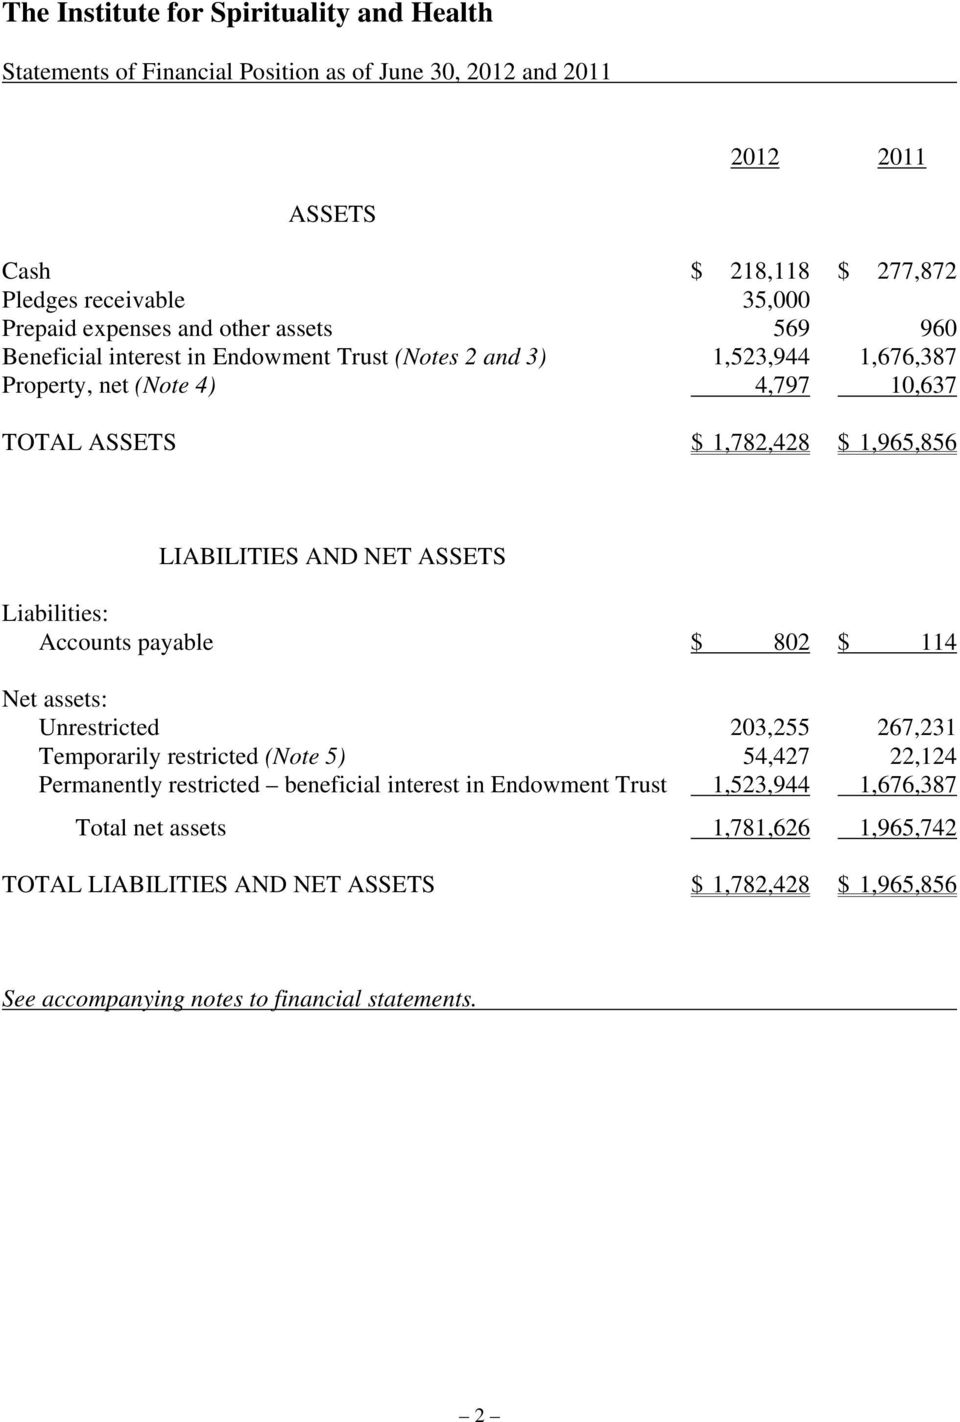 Liabilities: Accounts payable $ 802 $ 114 Net assets: Unrestricted 203,255 267,231 Temporarily restricted (Note 5) 54,427 22,124 Permanently restricted beneficial interest in